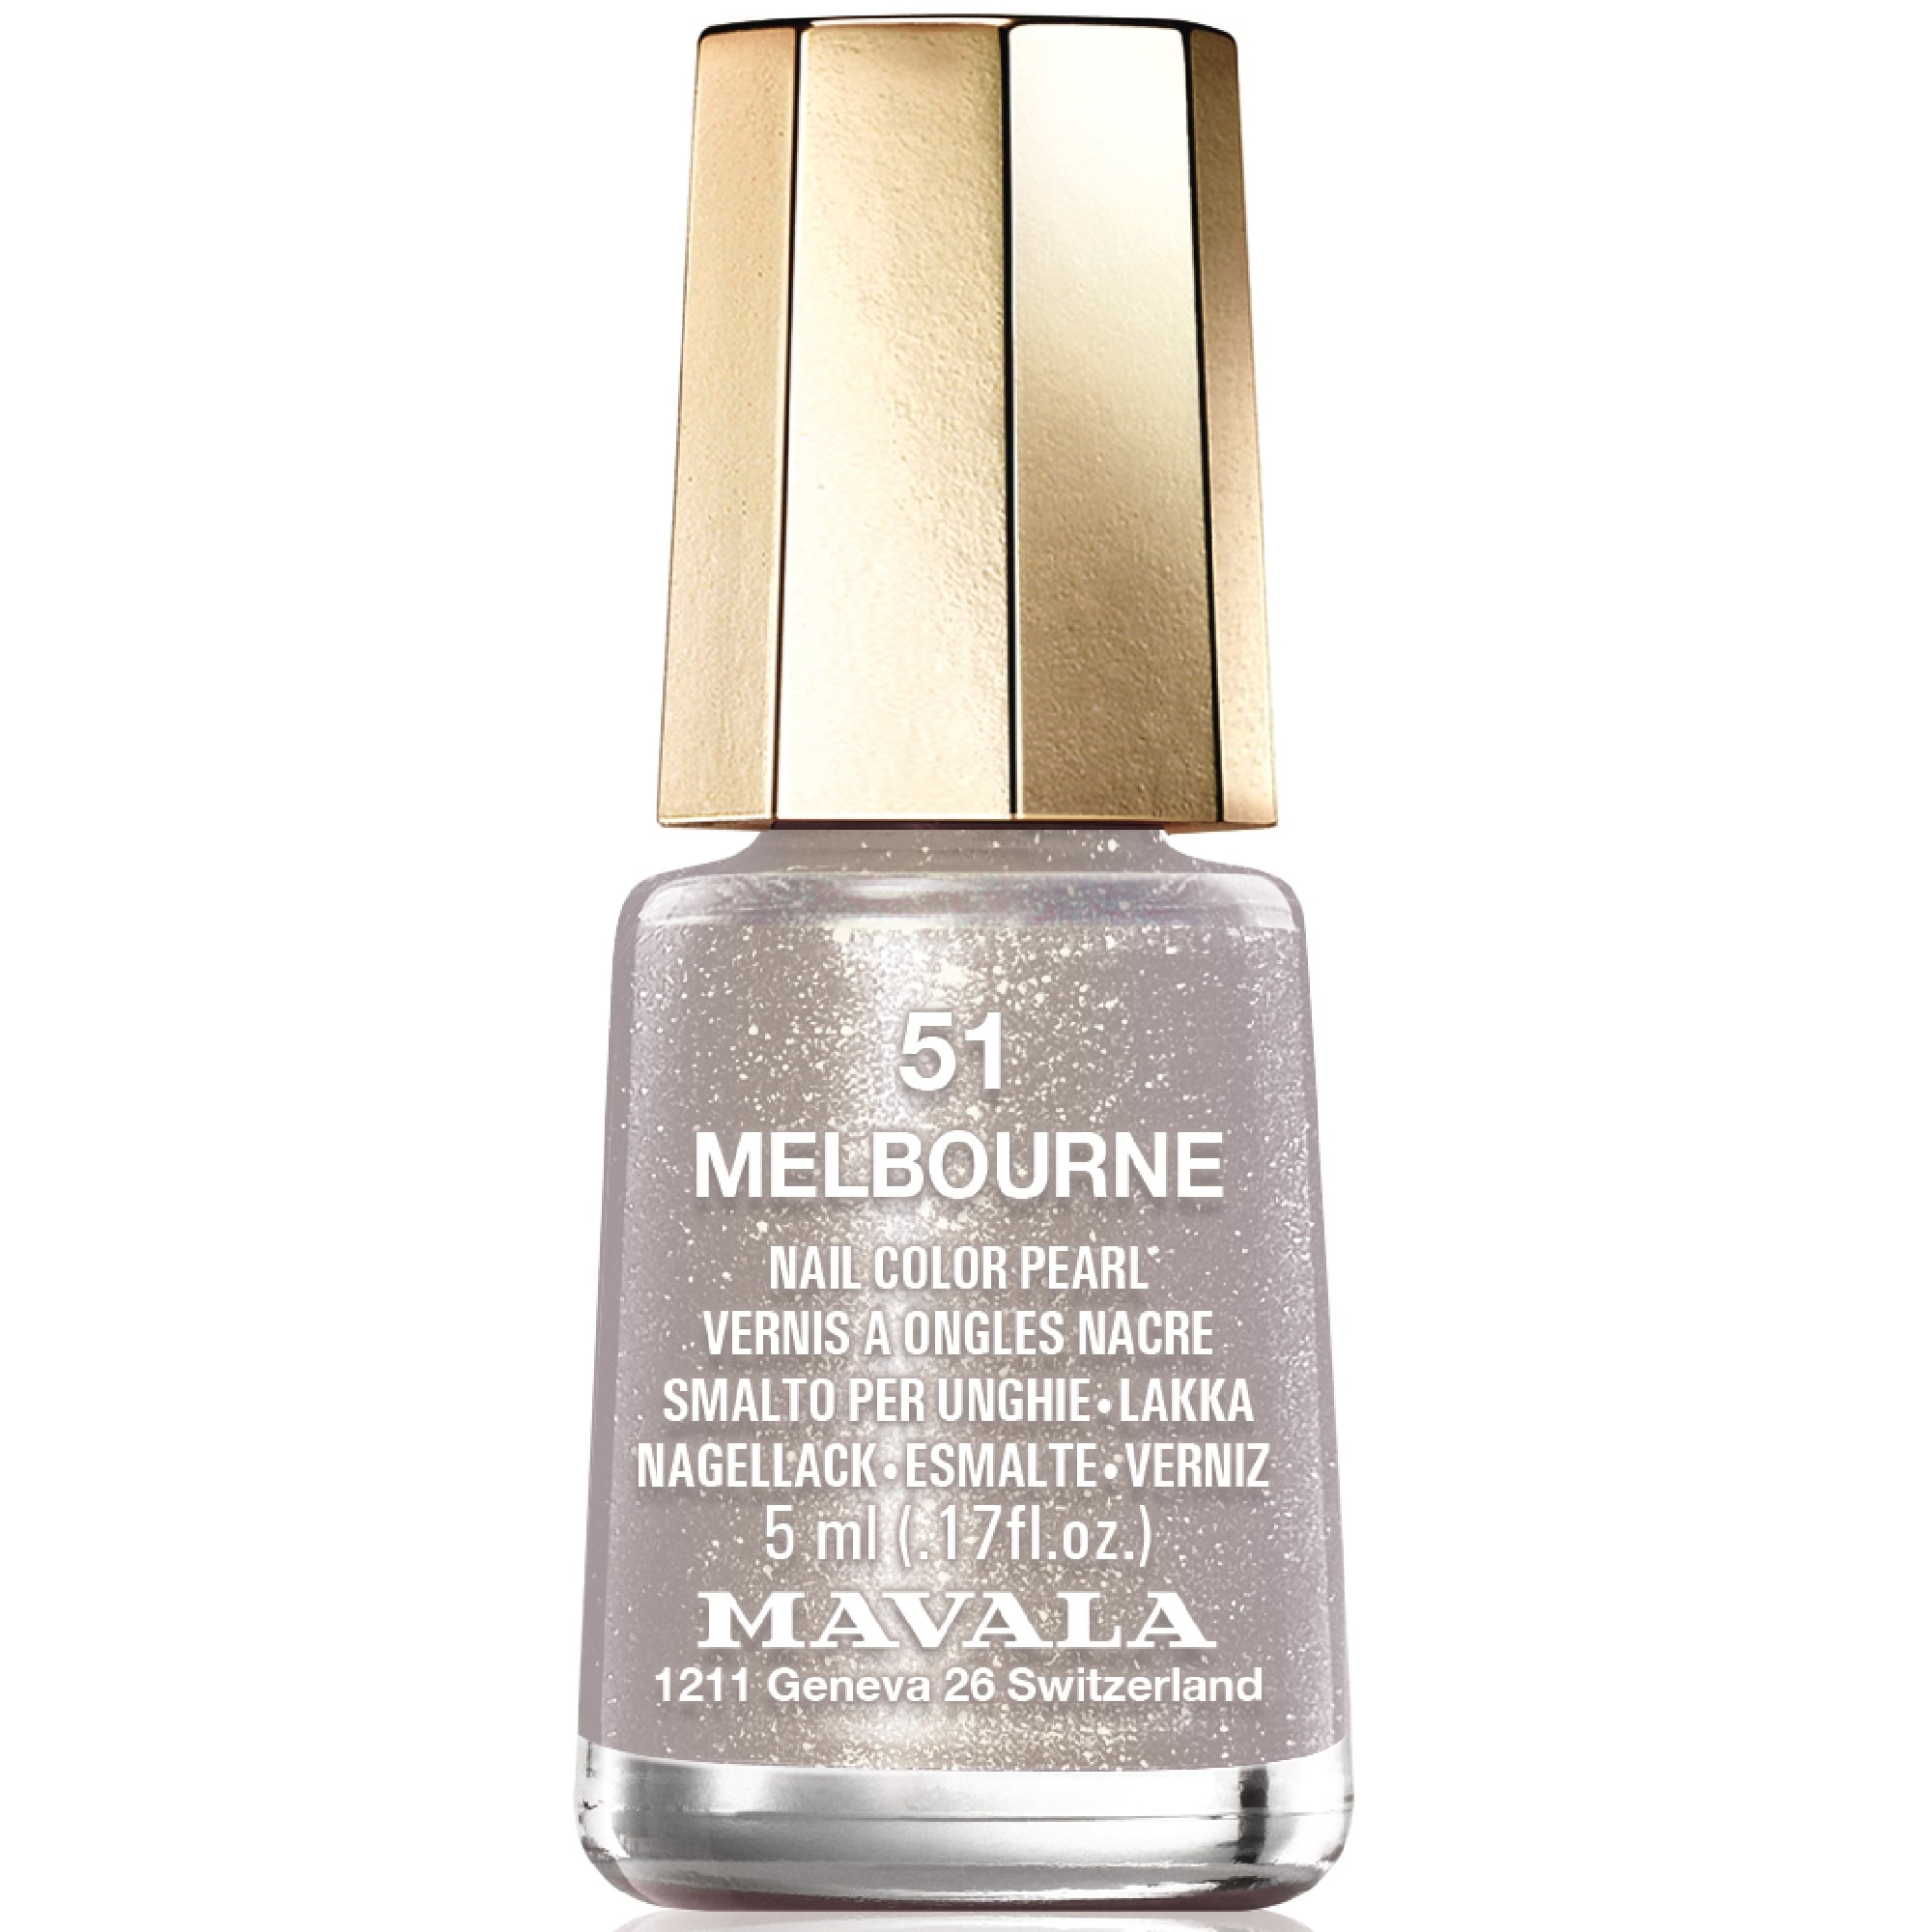 Mavala New Look Color\'s 2017 Collection - Melbourne (51) 5ml